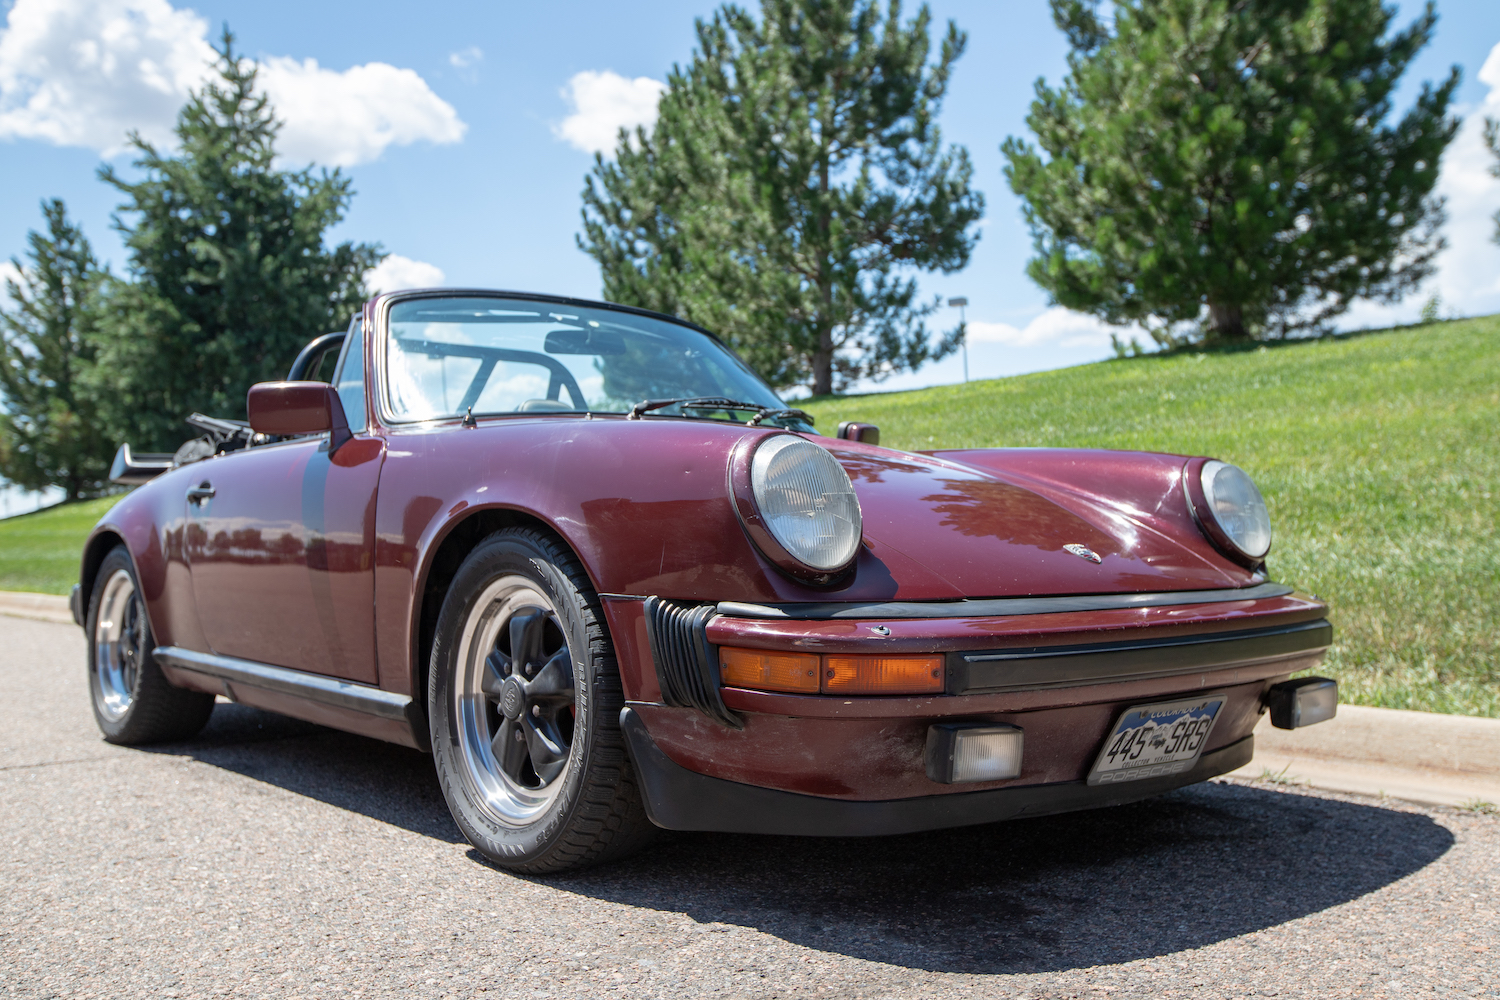 The 1983 Porsche 911SC Cabriolet is an open-air treat